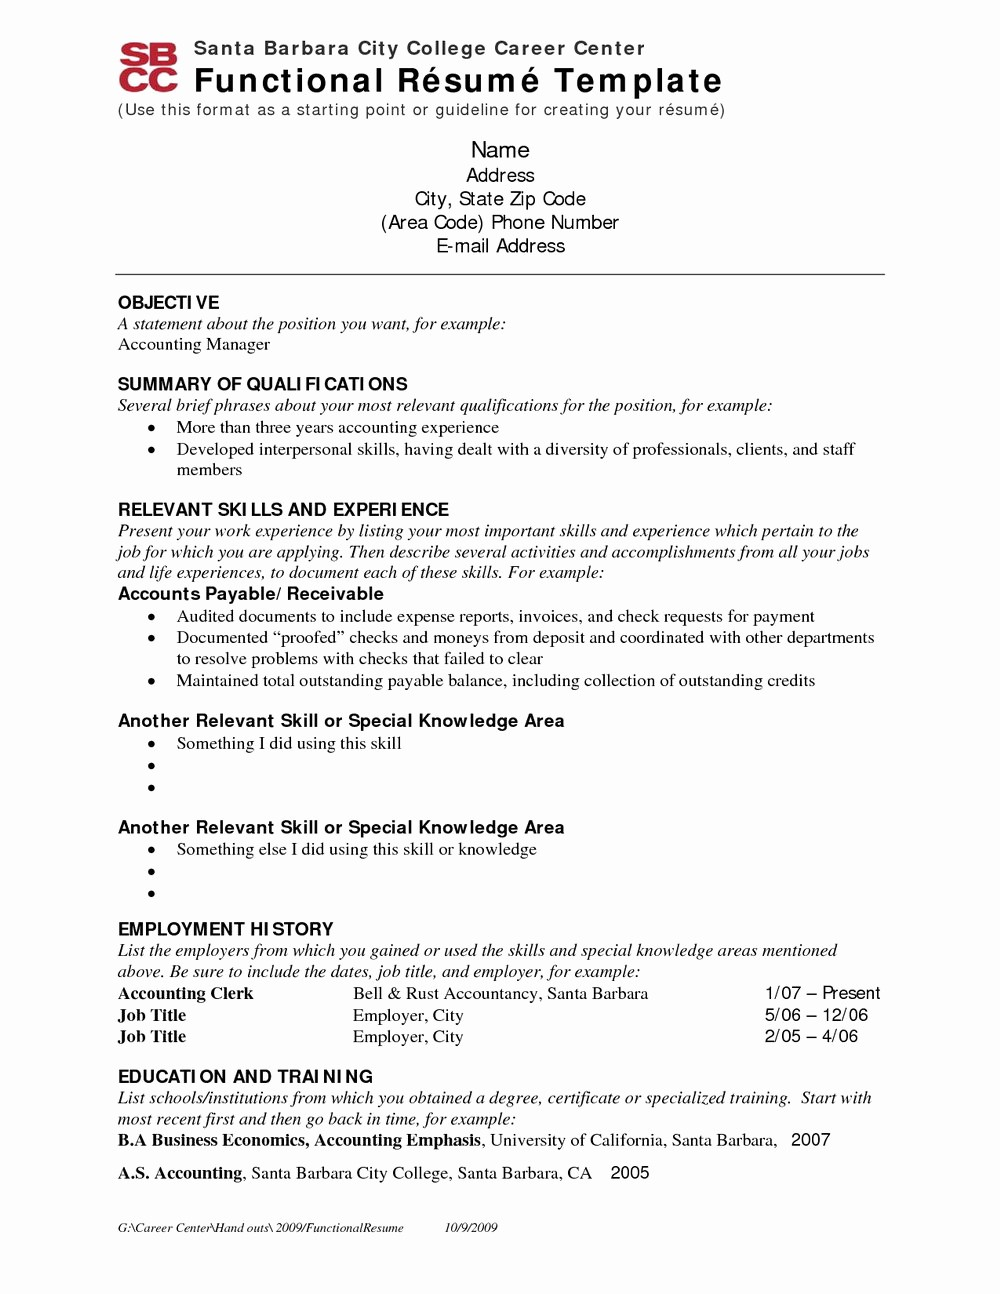 Functional Resume Templates Free Download Beautiful Executive Template